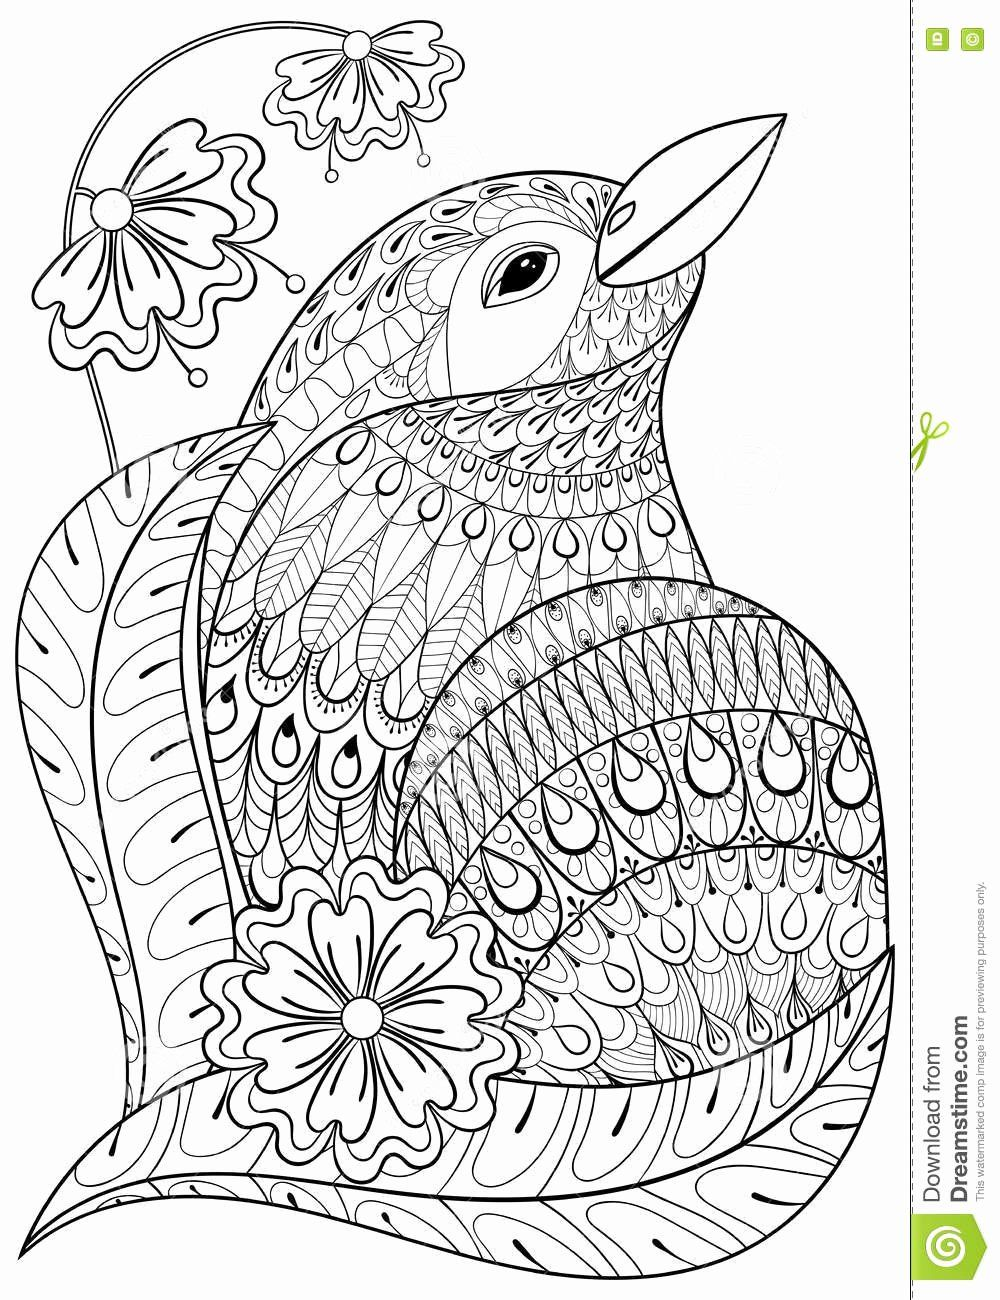 State Bird Coloring Page Awesome Free Bird Coloring Pages Kleuren Kleurplaten Zendoodle